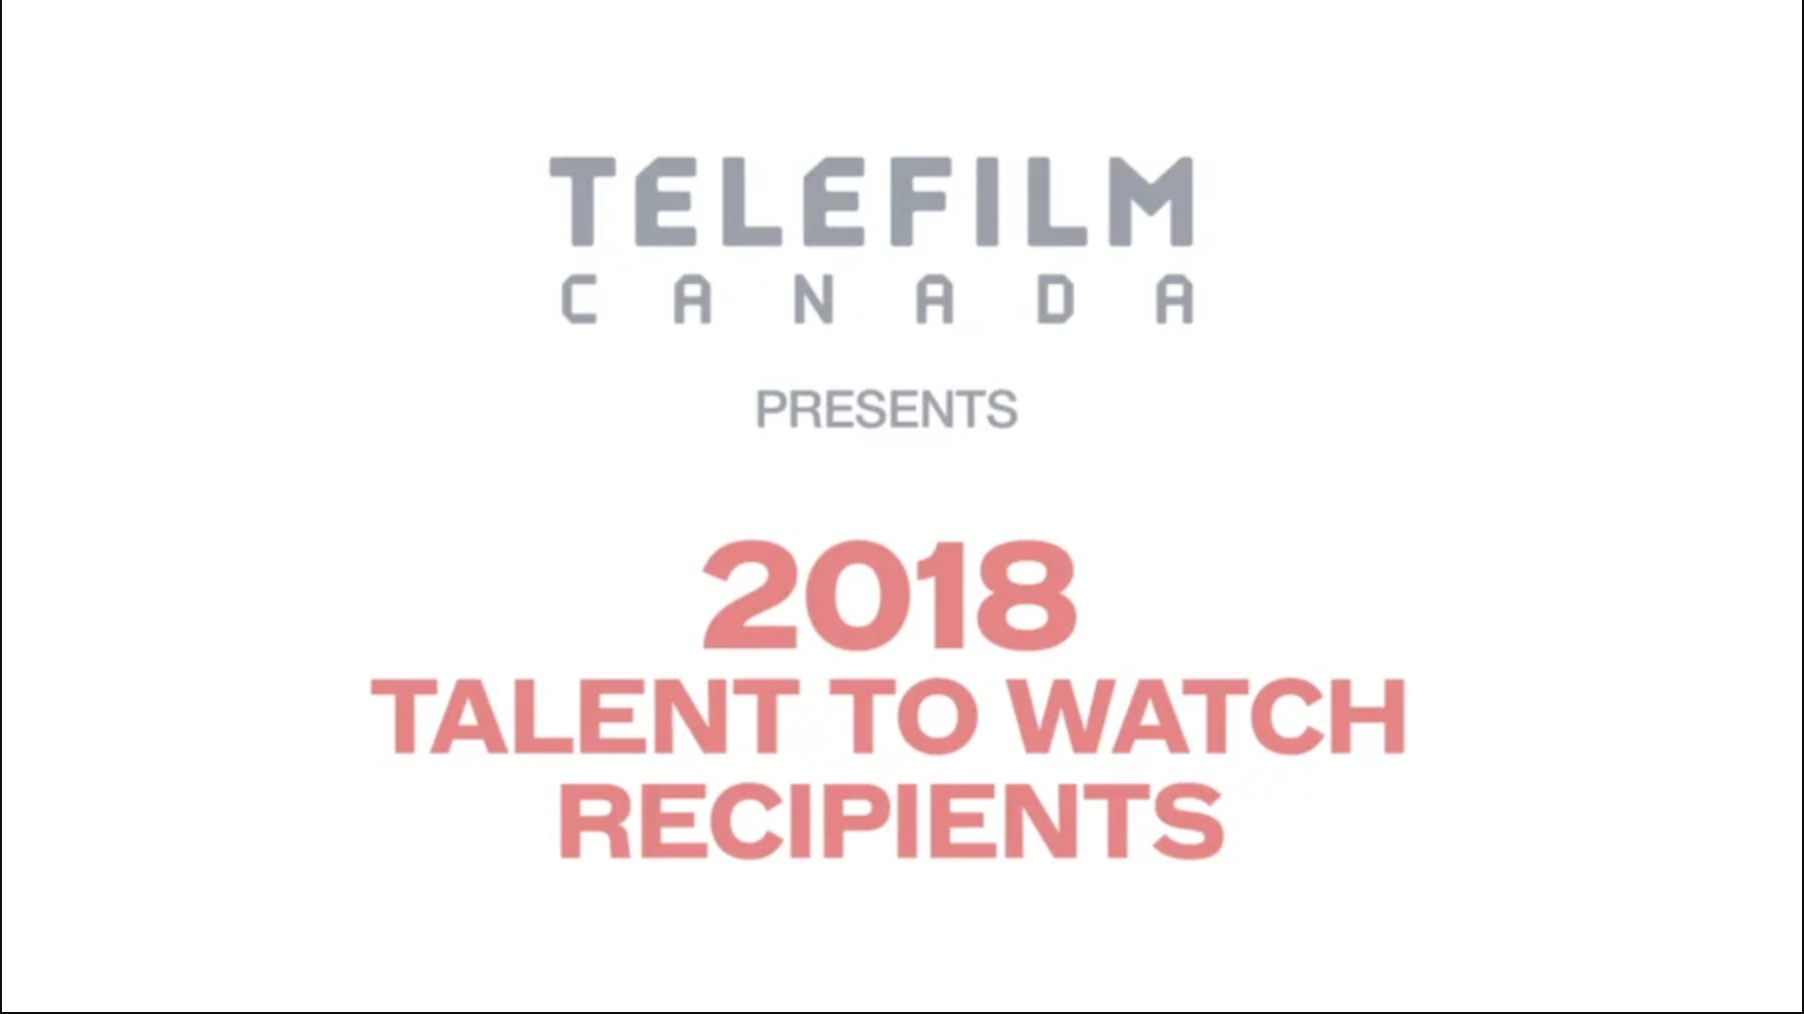 Karen Harnisch was part of the five-member jury that selected the English-language project for the Telefilm Canada Talent to Watch program